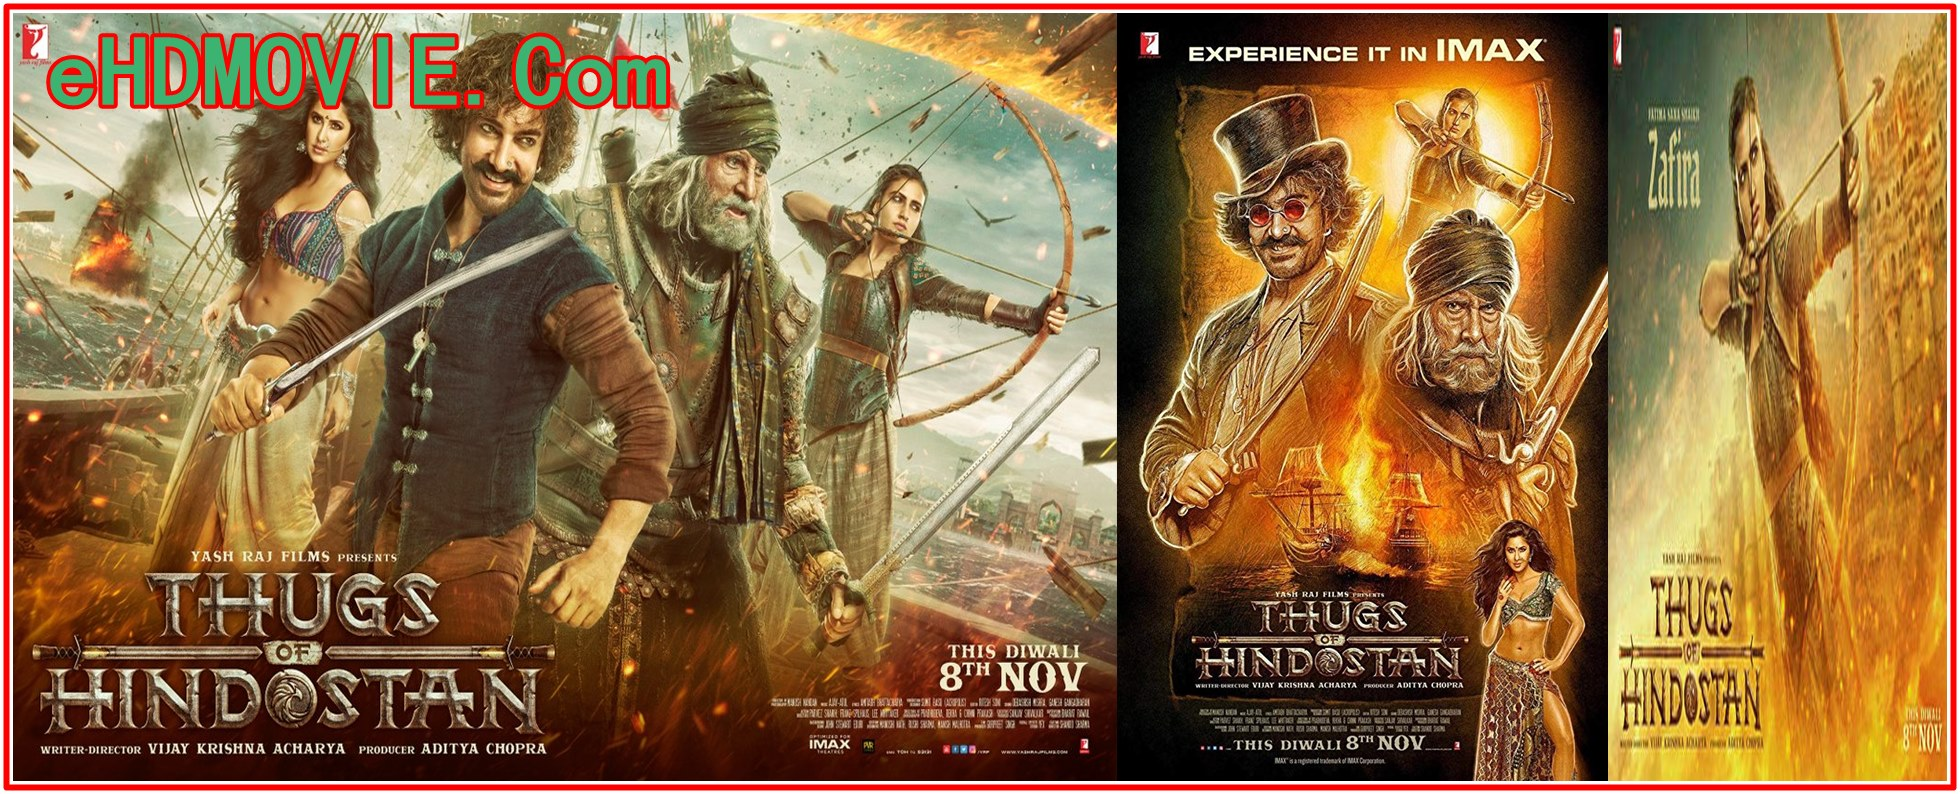 Thugs of Hindostan 2018 Full Movie Hindi 1080p – 720p – HEVC – 480p ORG WEB-DL 450MB – 750MB – 1.6GB – 2.7GB ESubs Free Download